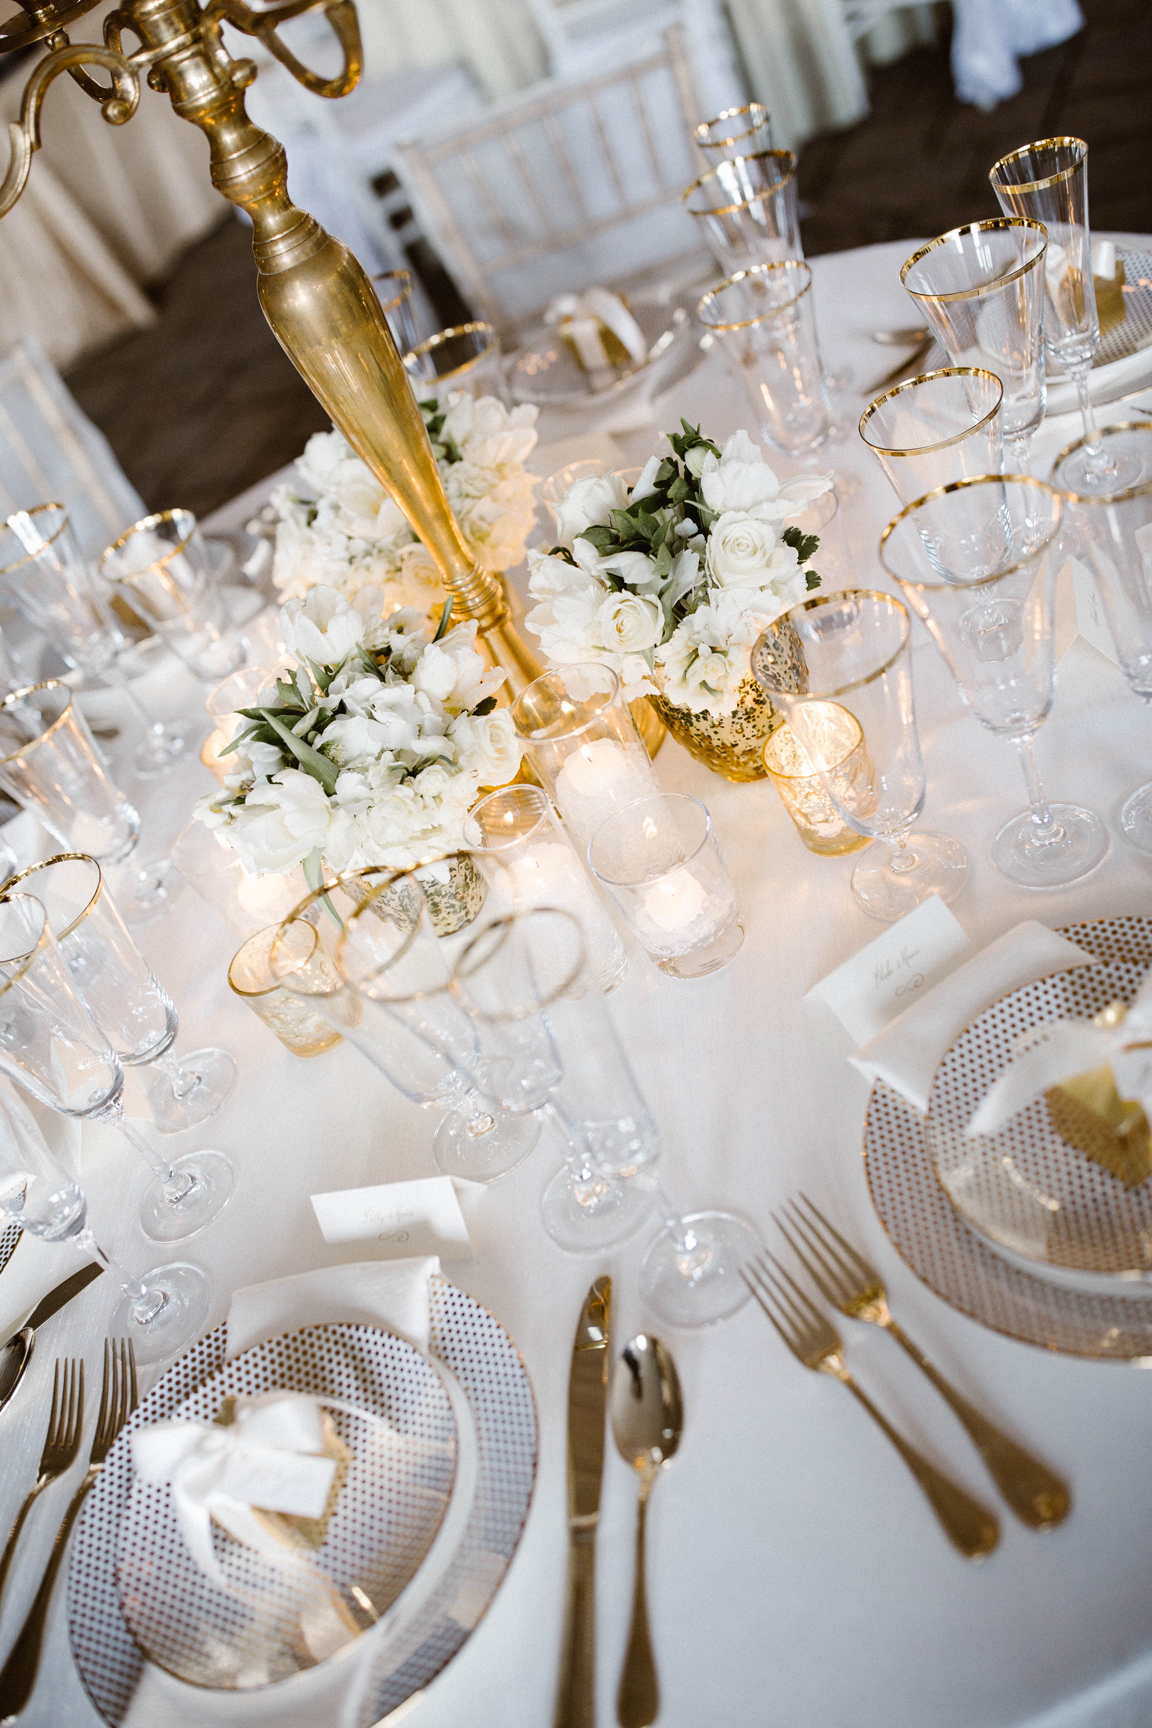 DeLille+Cellars_The+Chateau_Woodinville_2017_Weddings+In+Woodinville115.jpg